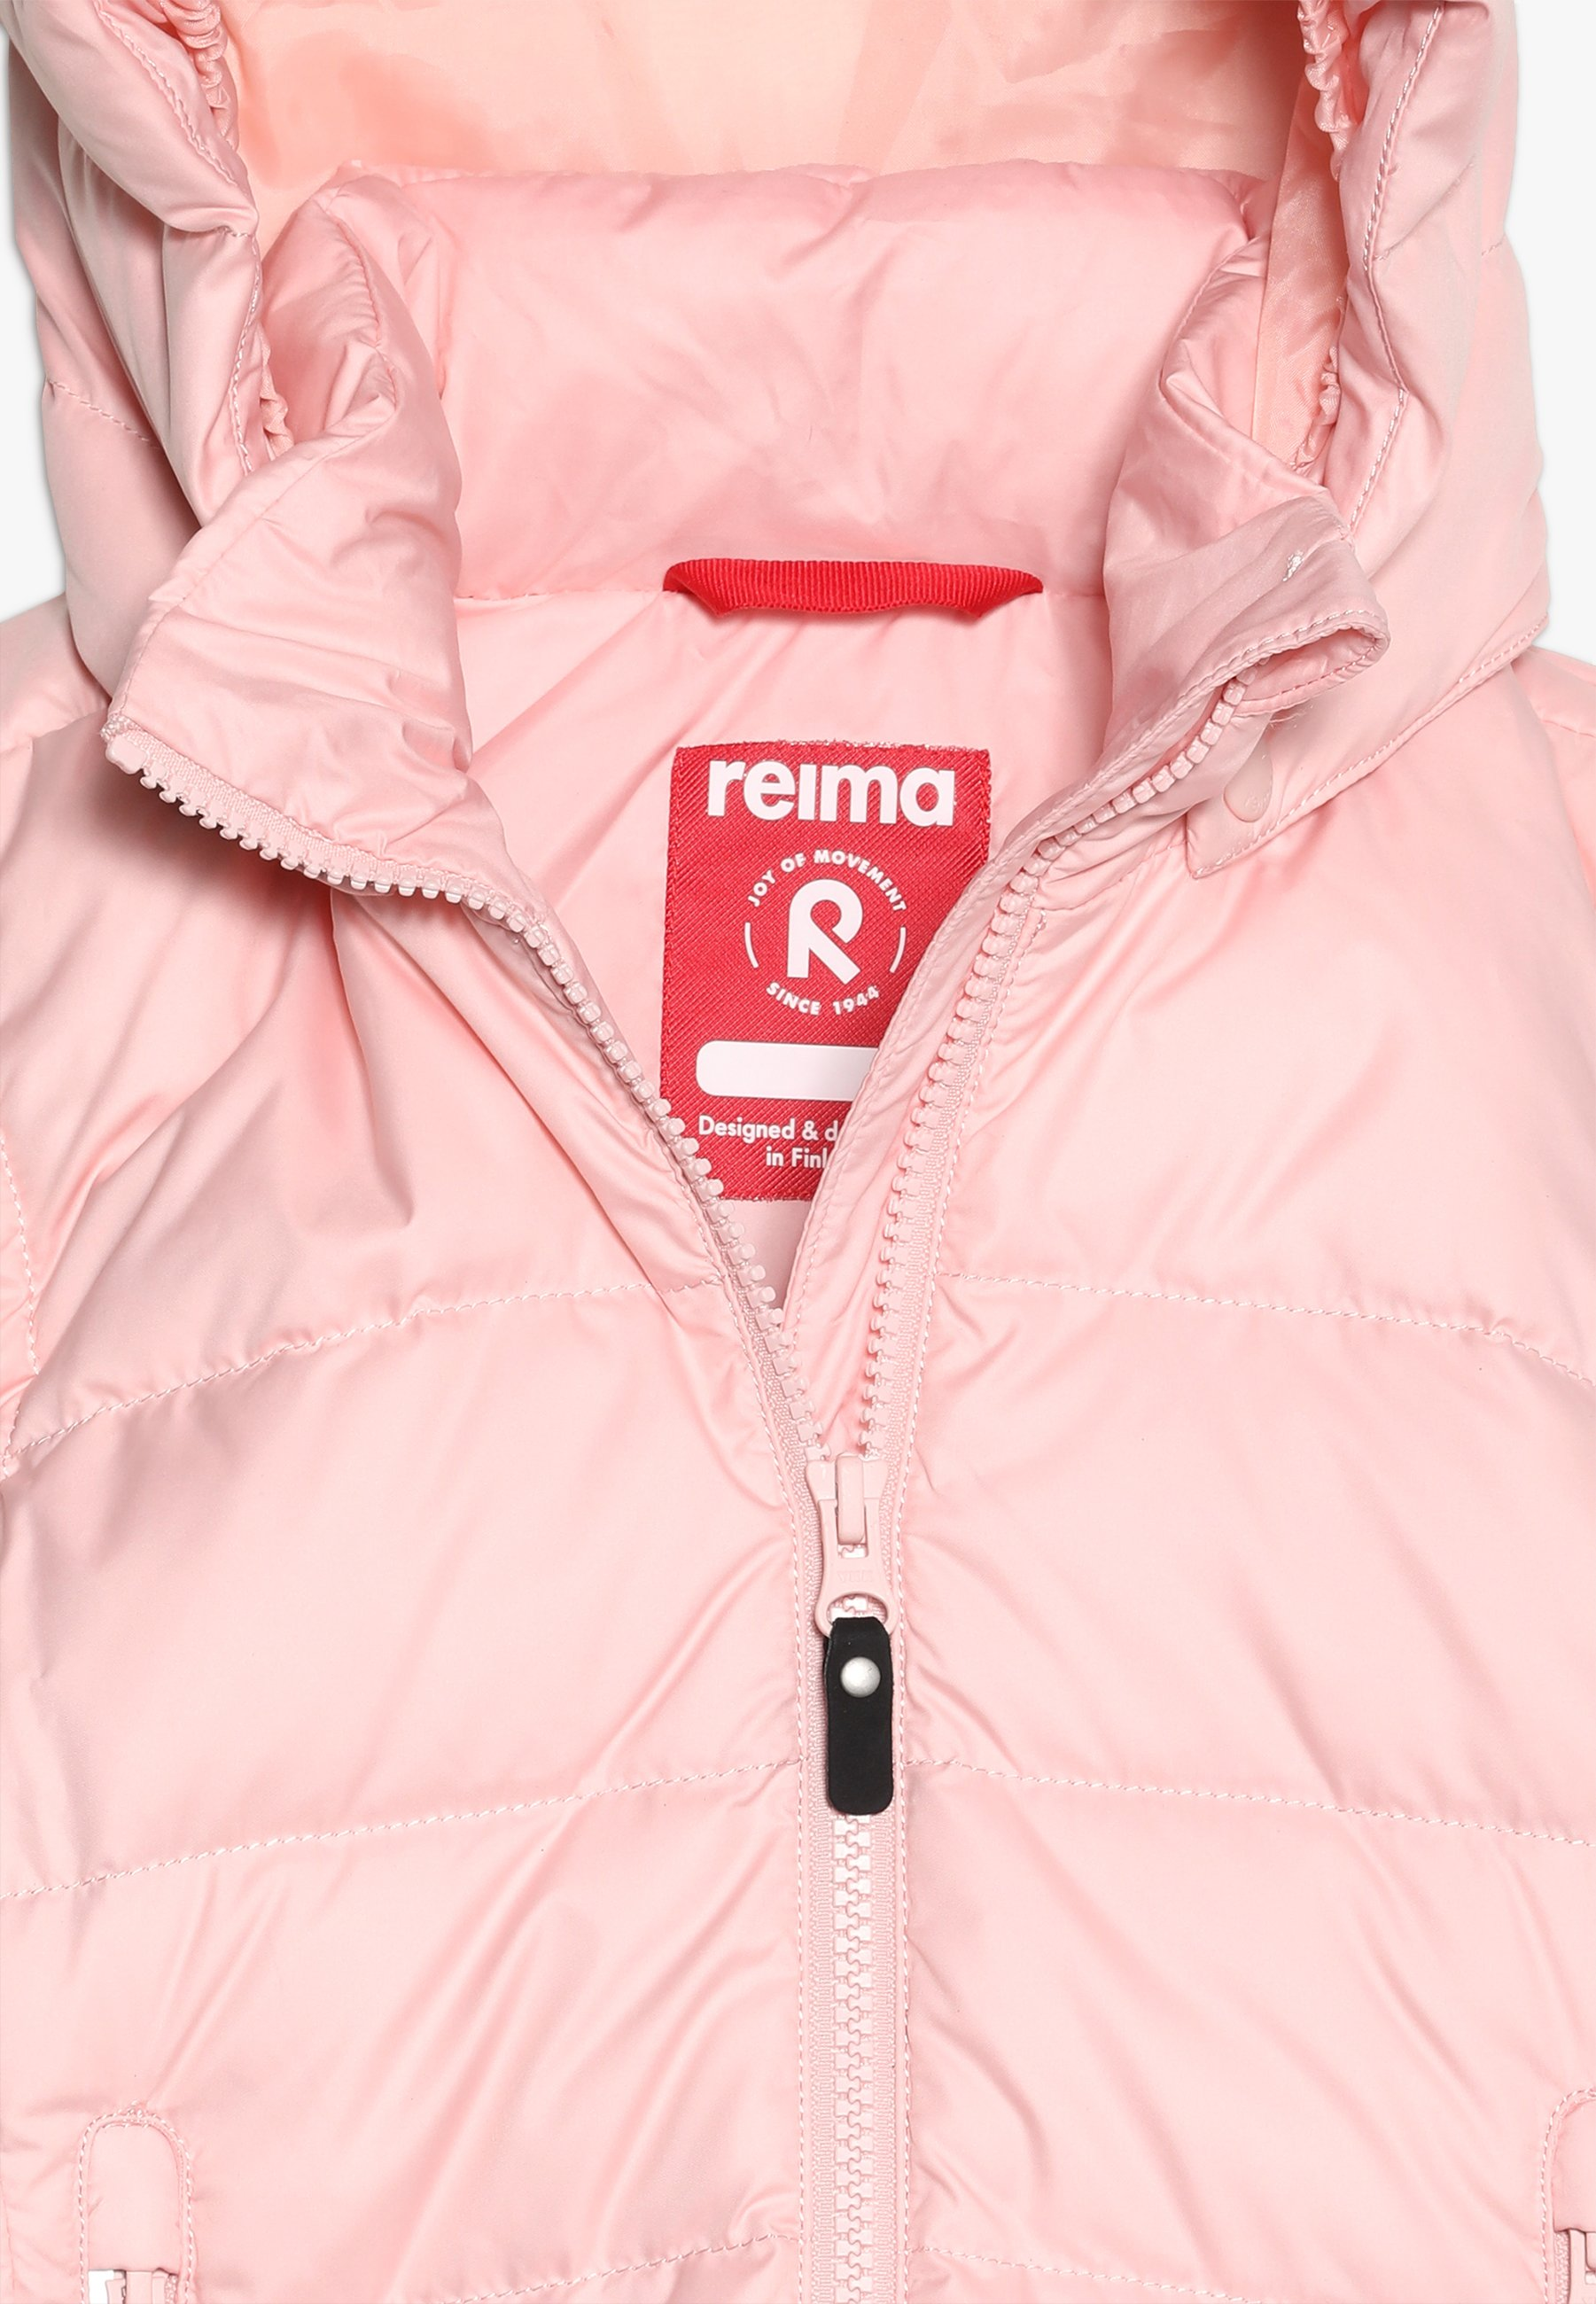 Reima MINNA 2IN1 Dunjakke powder pinkrosa Zalando.no